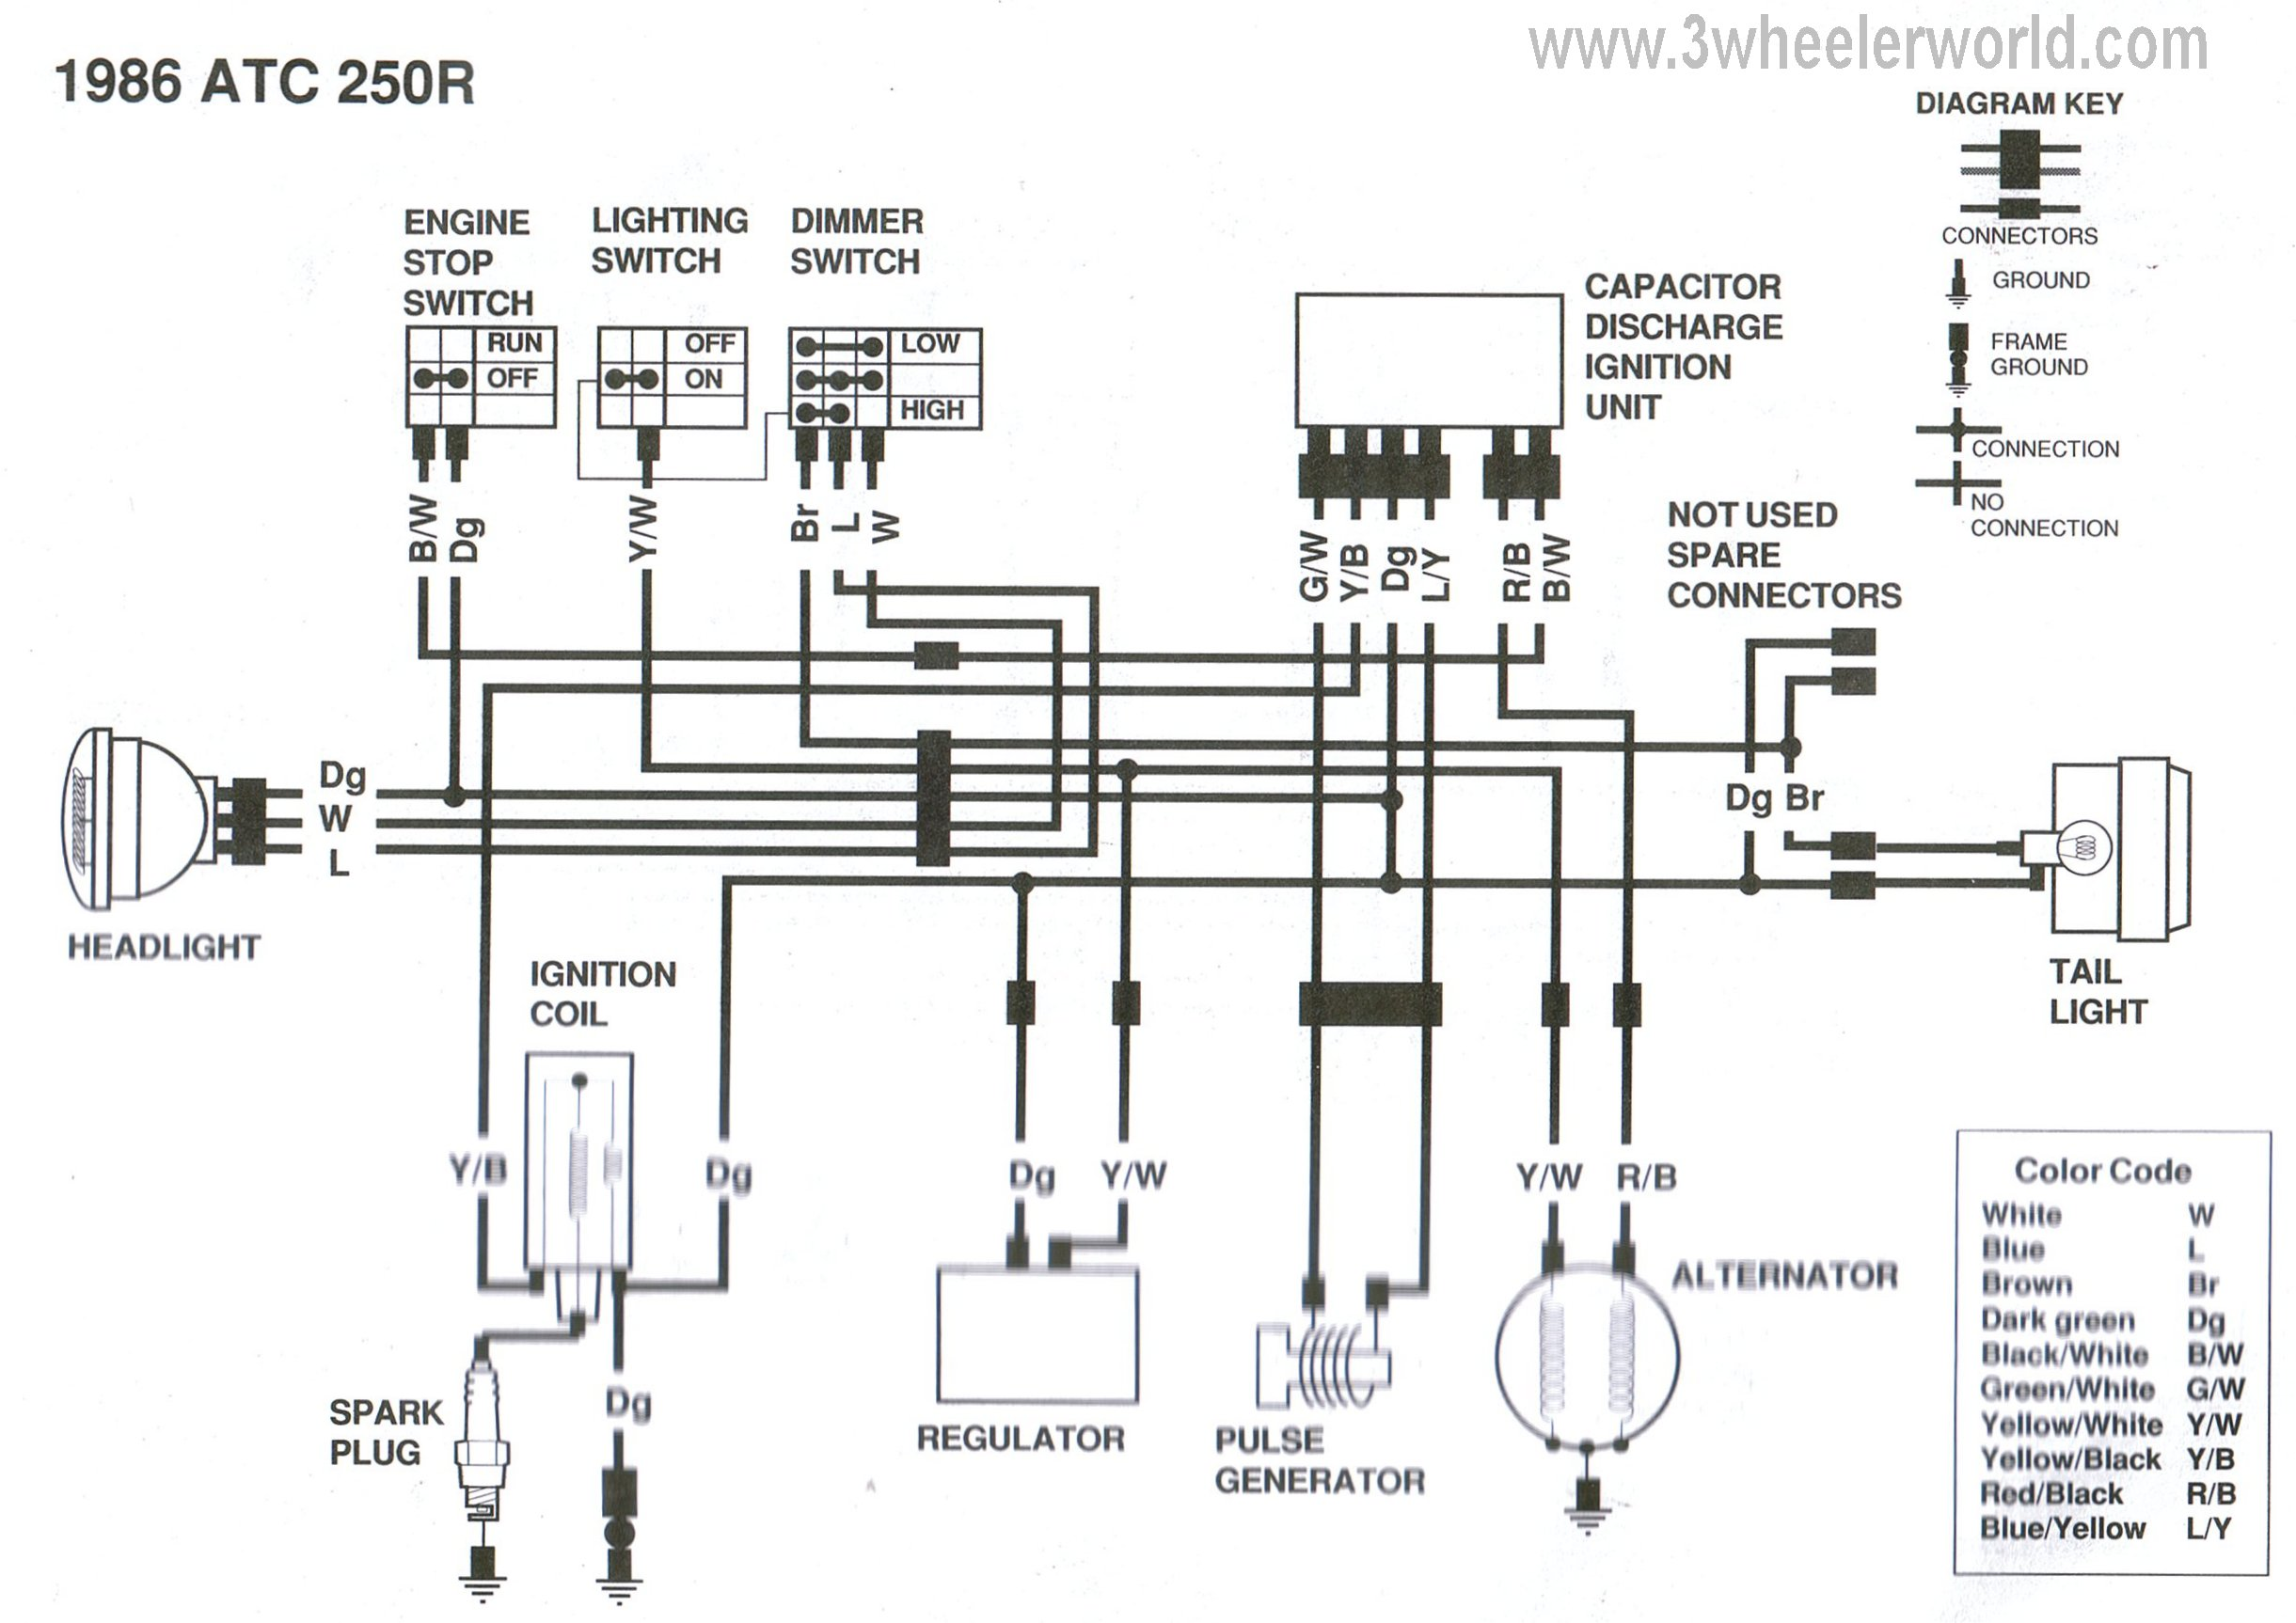 Honda 300 Fourtrax Wiring Diagram on Honda Atc 250r Wiring Diagram